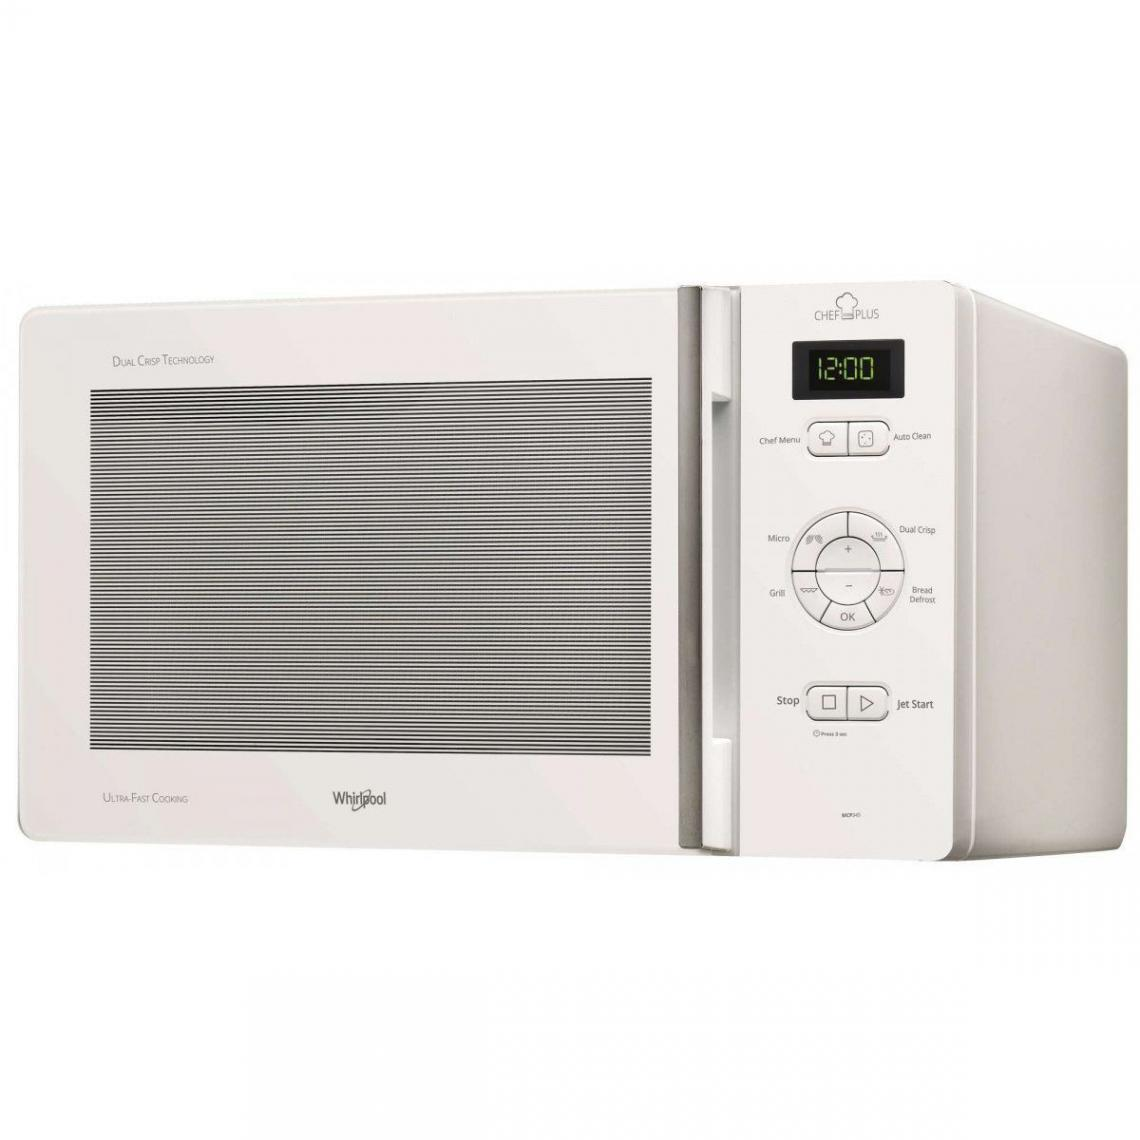 whirlpool Micro-ondes Pose Libre 25l Whirlpool 800w 52cm, 1044781